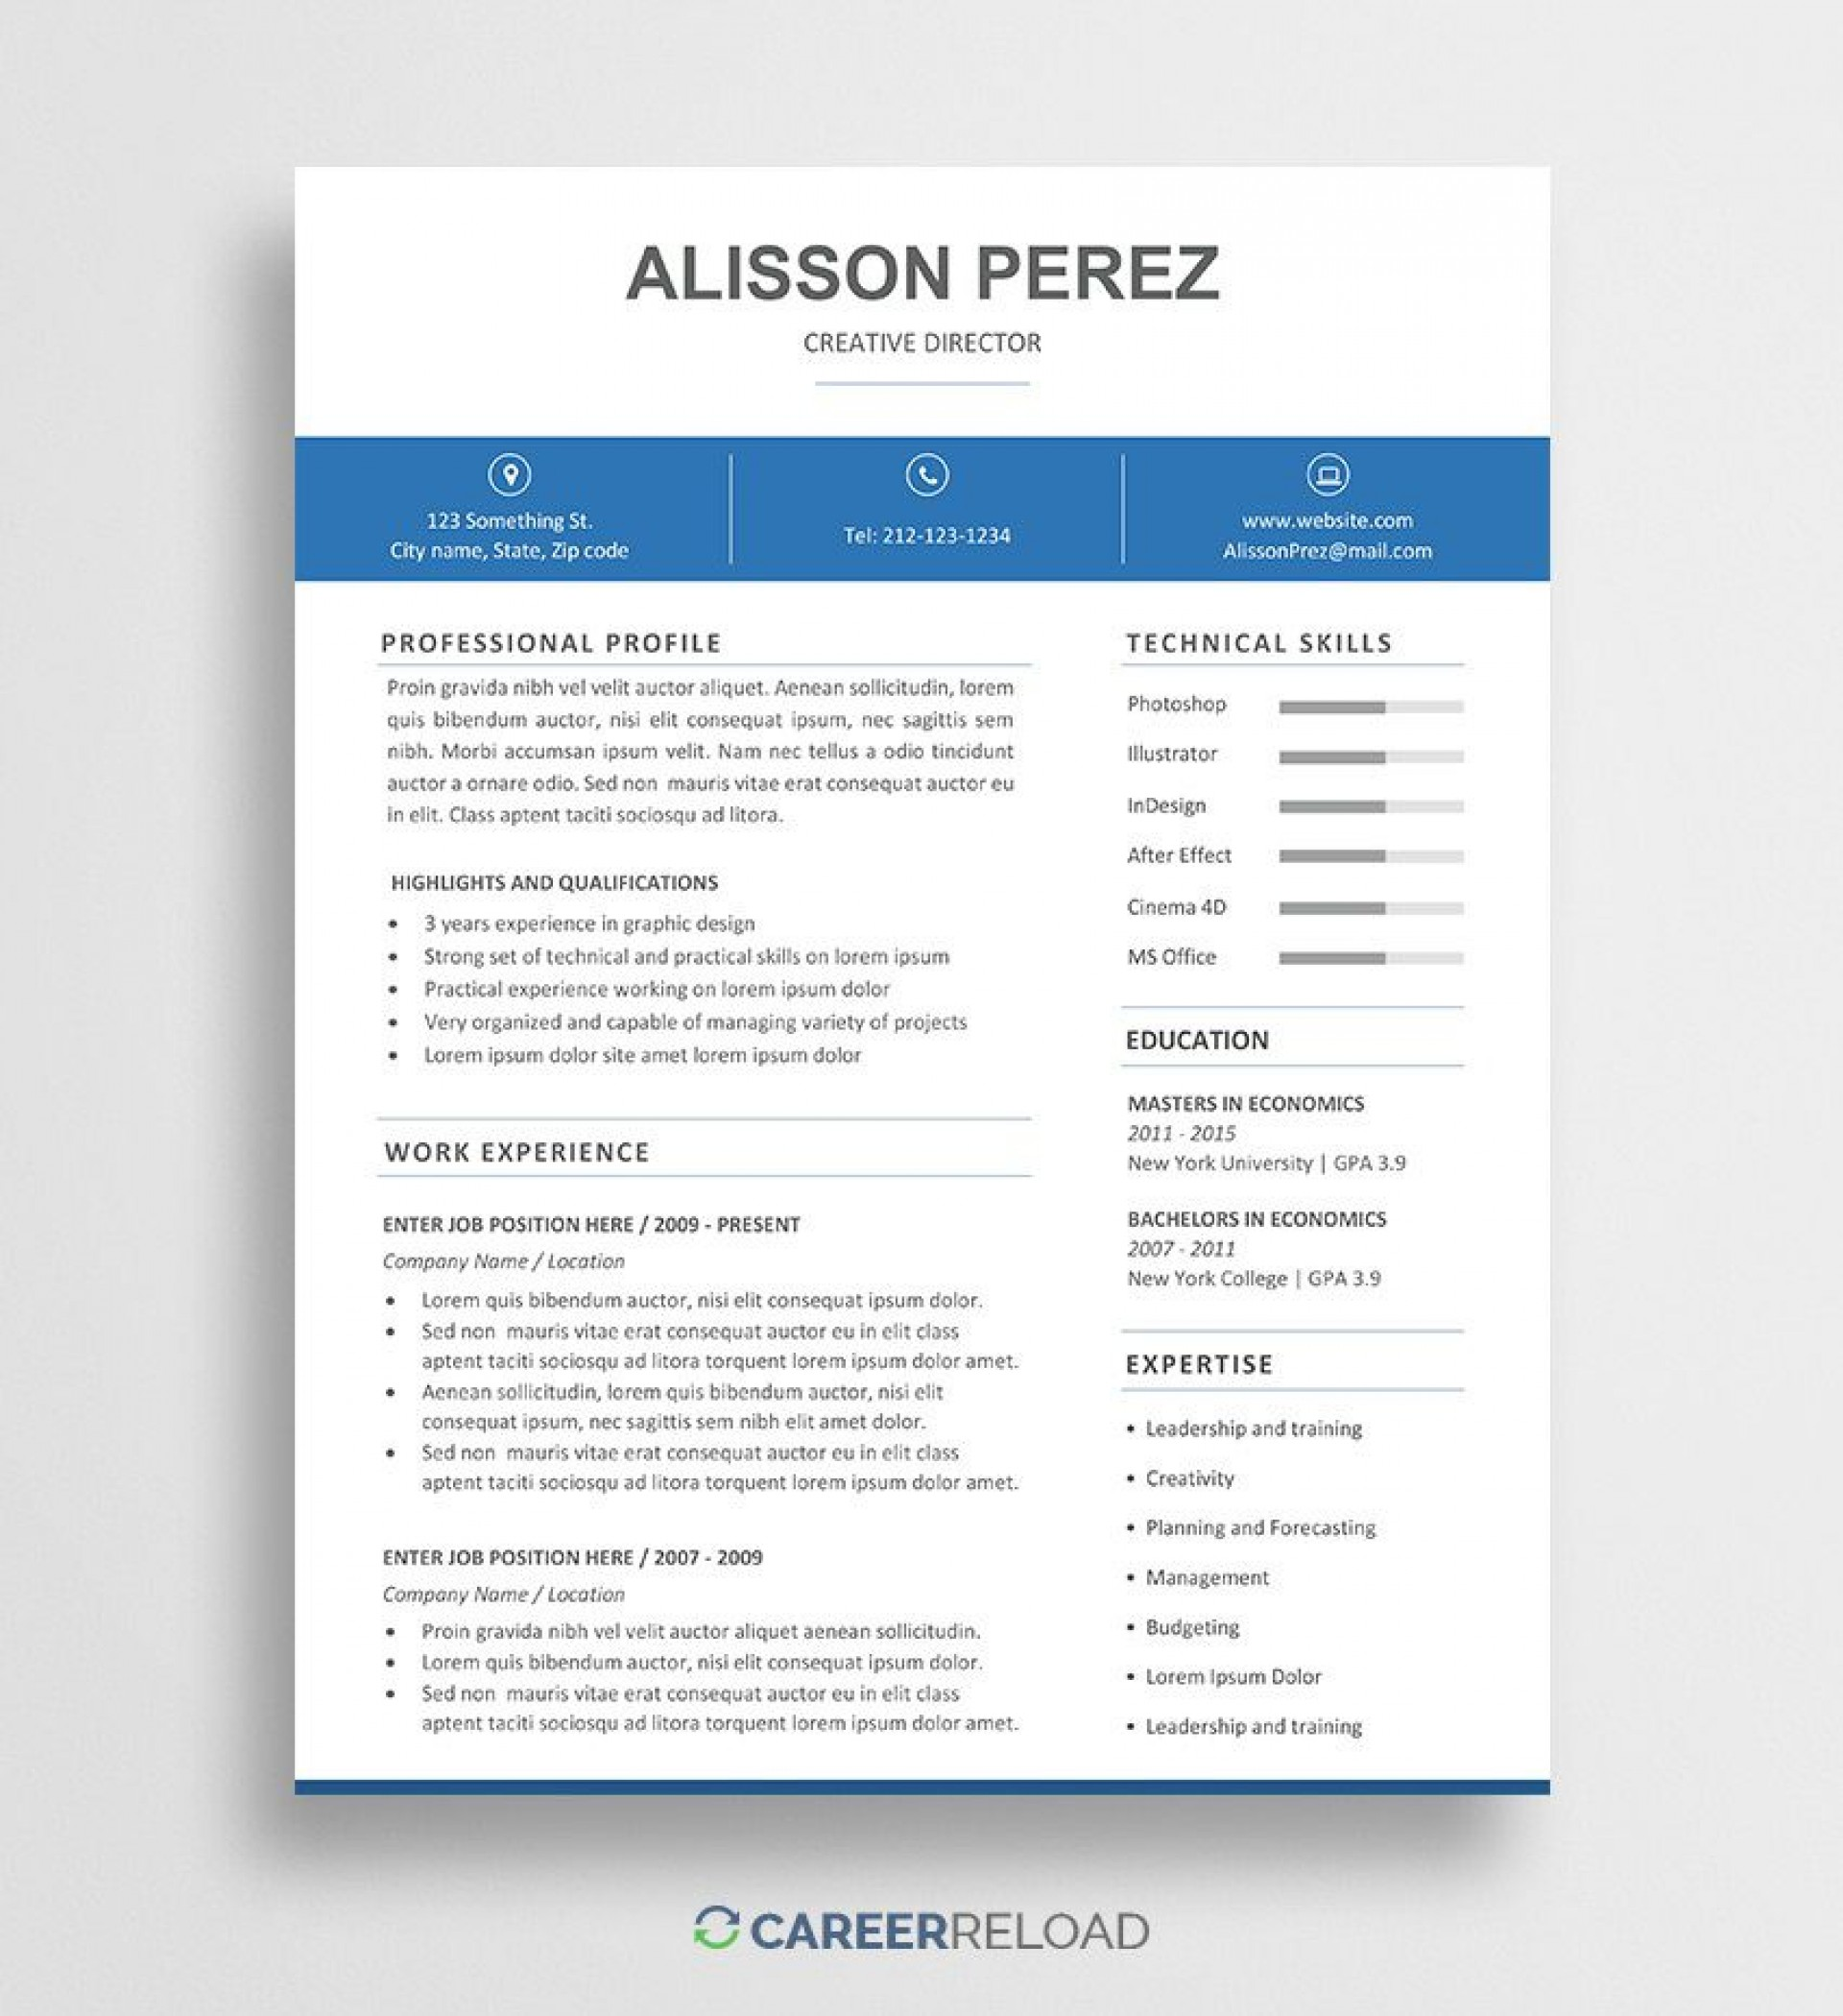 008 Fearsome Microsoft Word Free Template Image  Templates For Report Invoice Uk Download1920